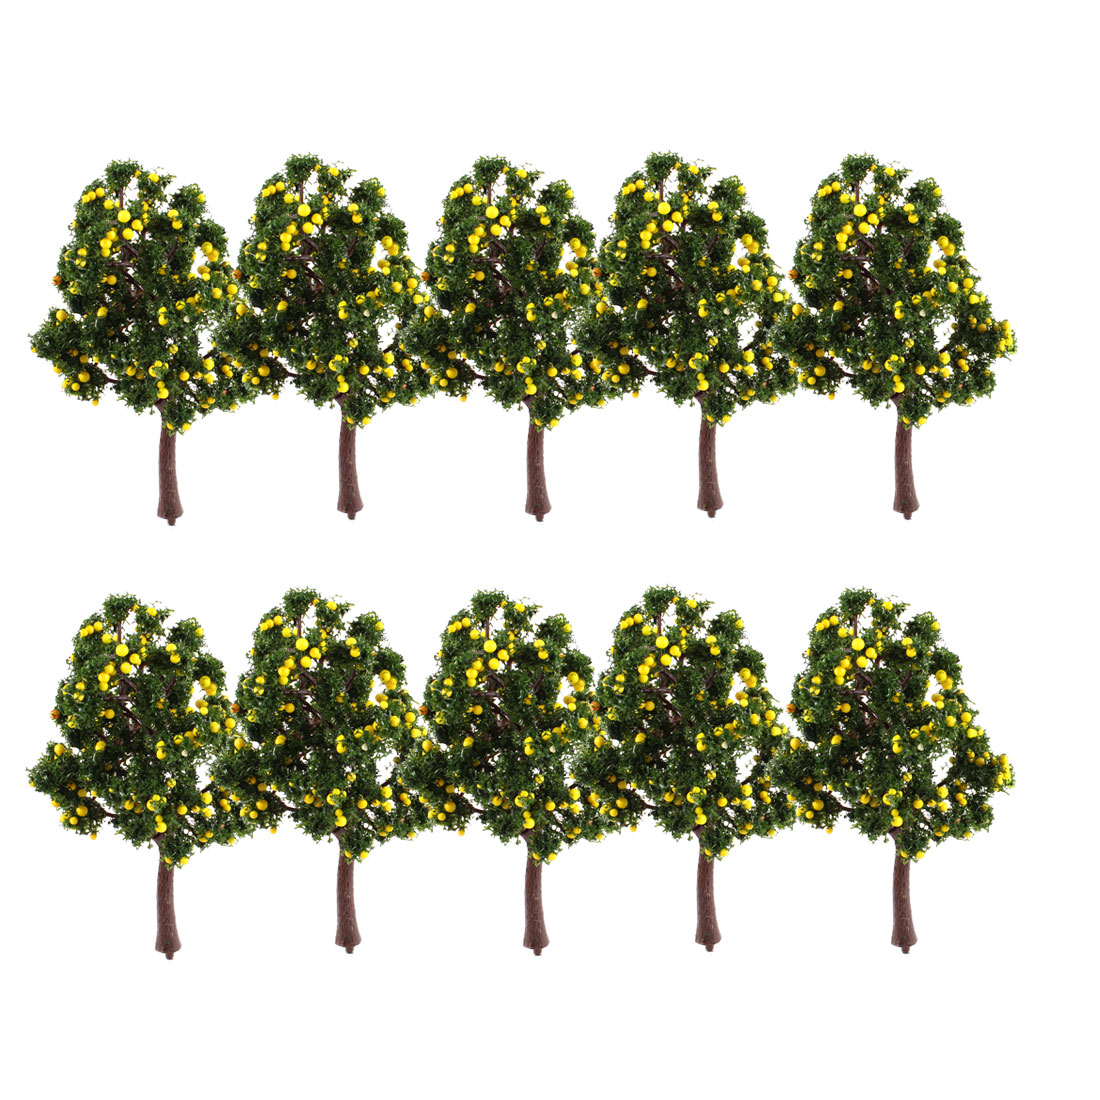 "10Pcs Artificial Plastic Dark Green Leaf Yellow Fruit Model Tree 4.9"" High 1:100"